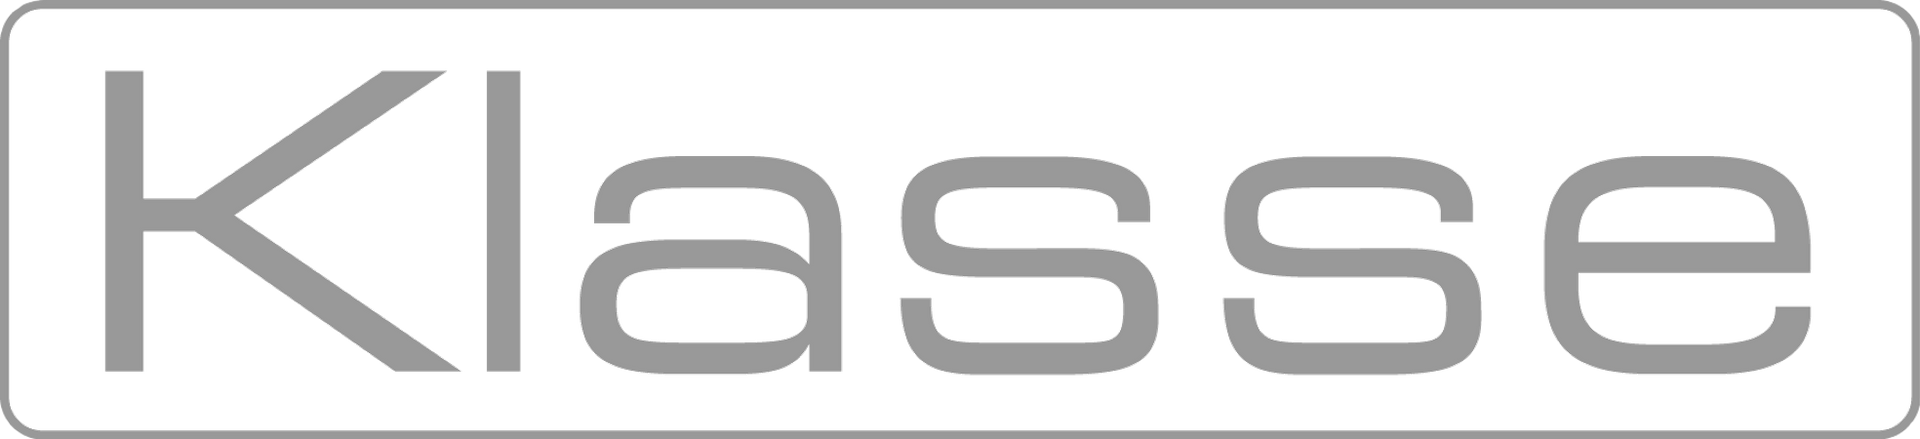 Klasse logo (no white) - Copy.png